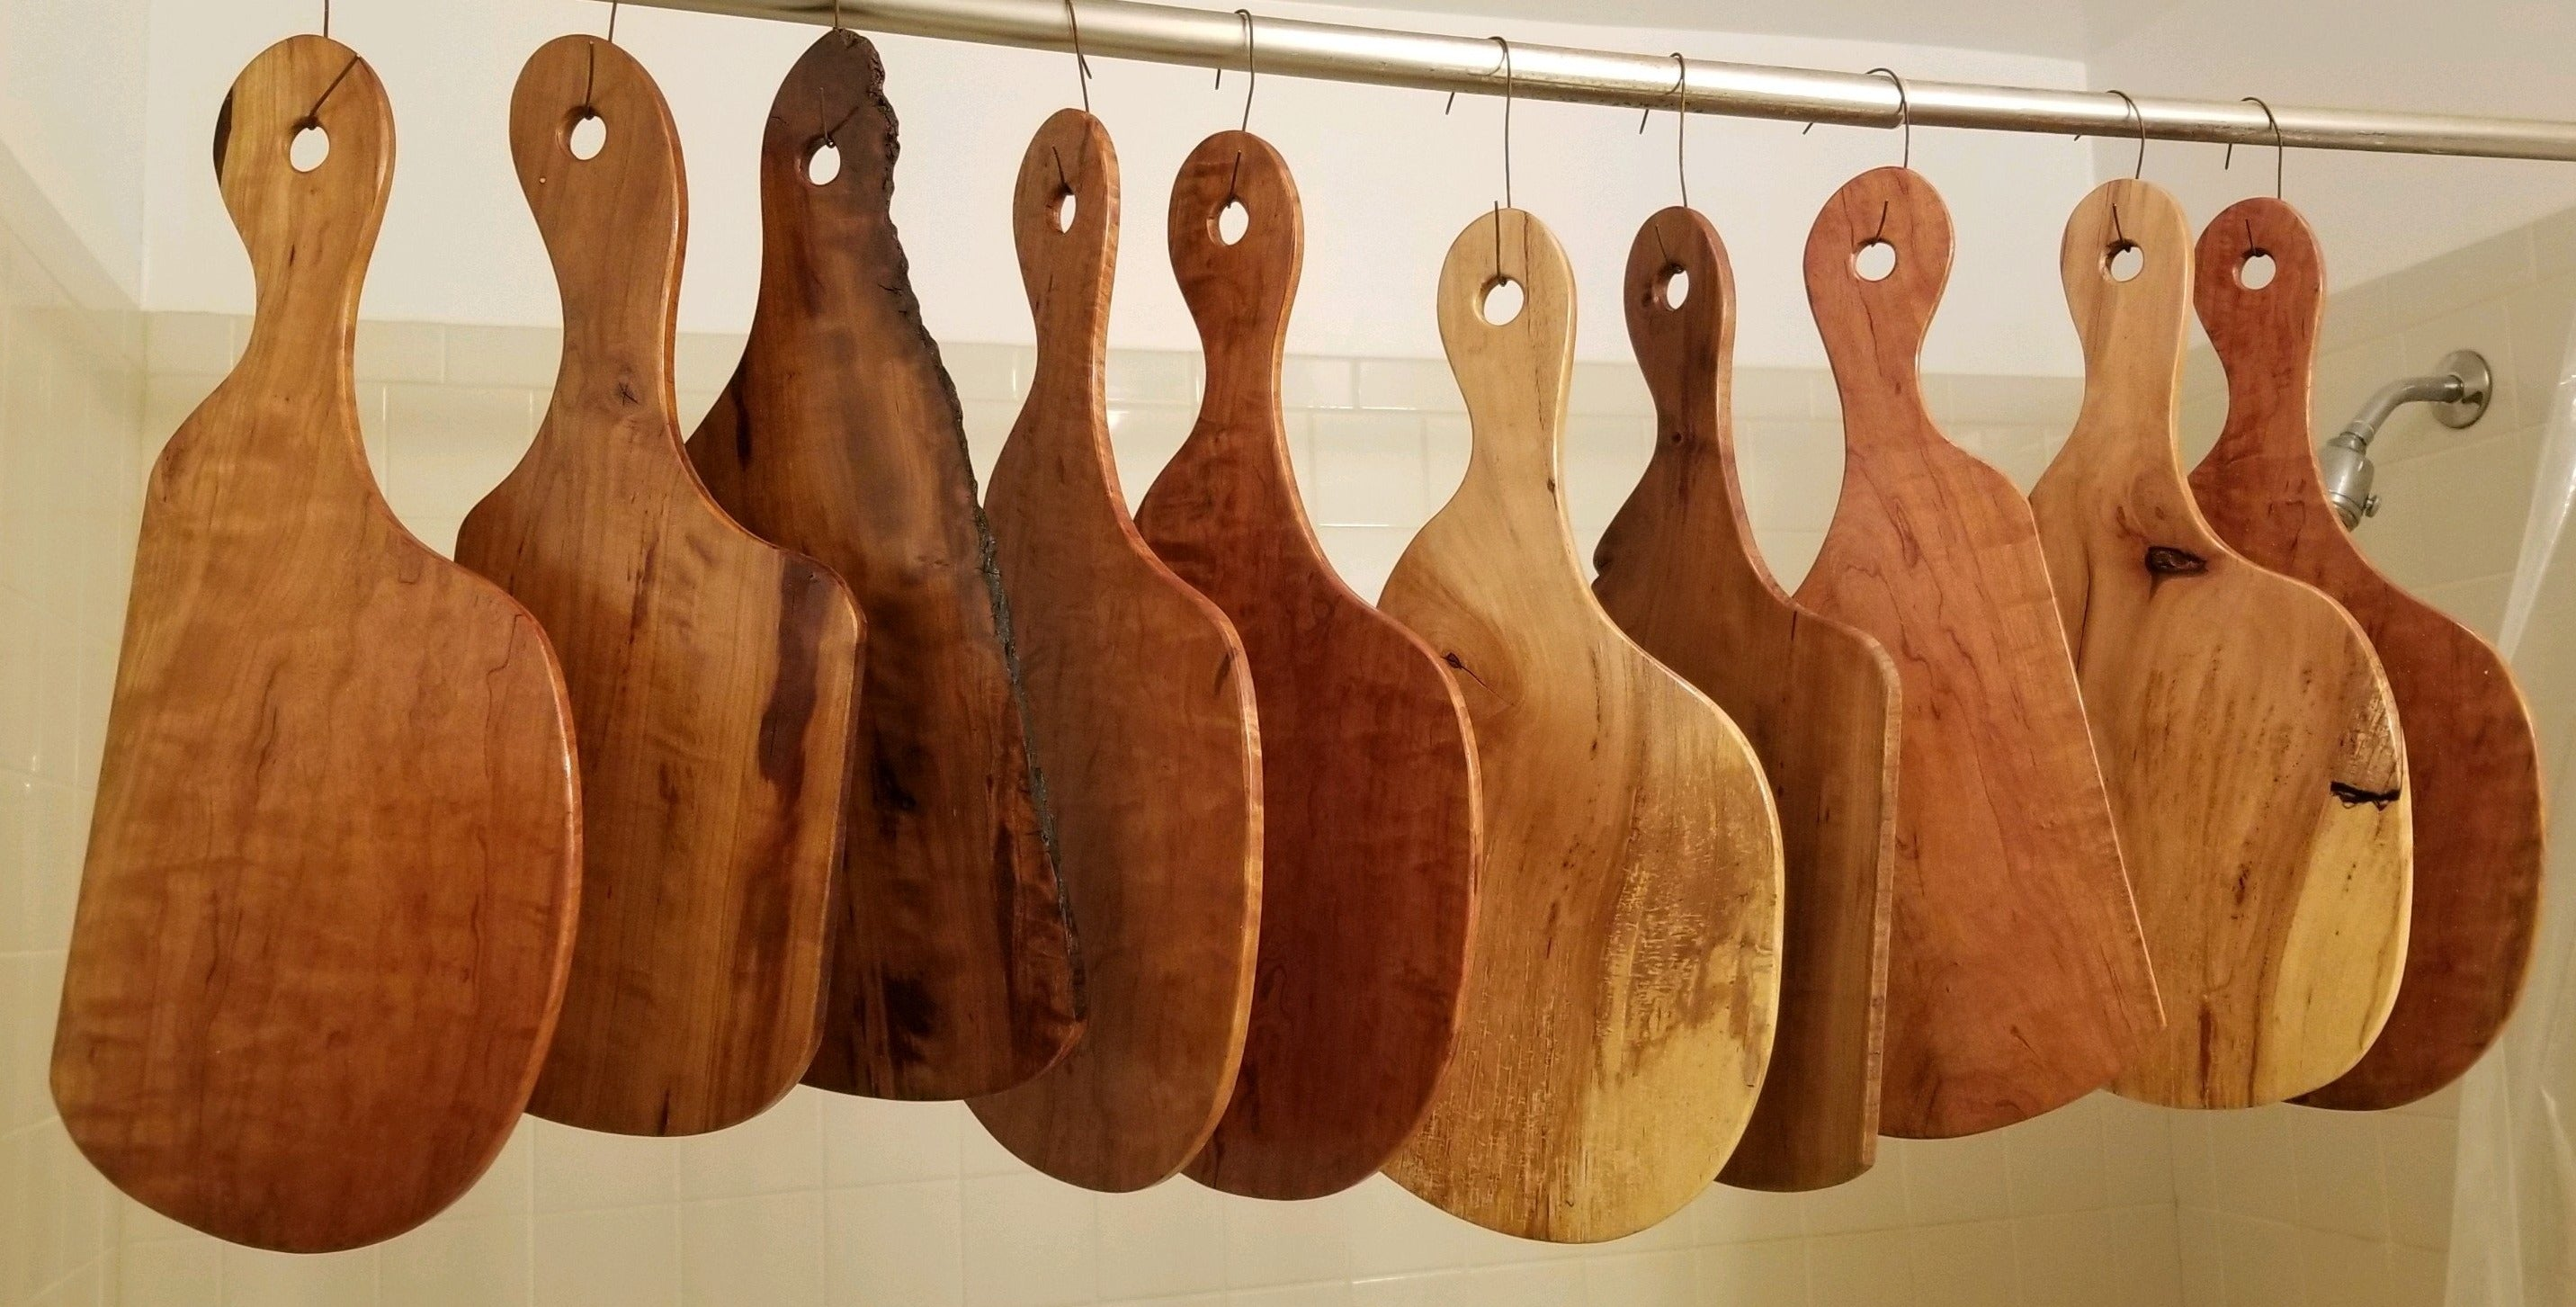 Harborwood Studio - Hardwood cheese boards